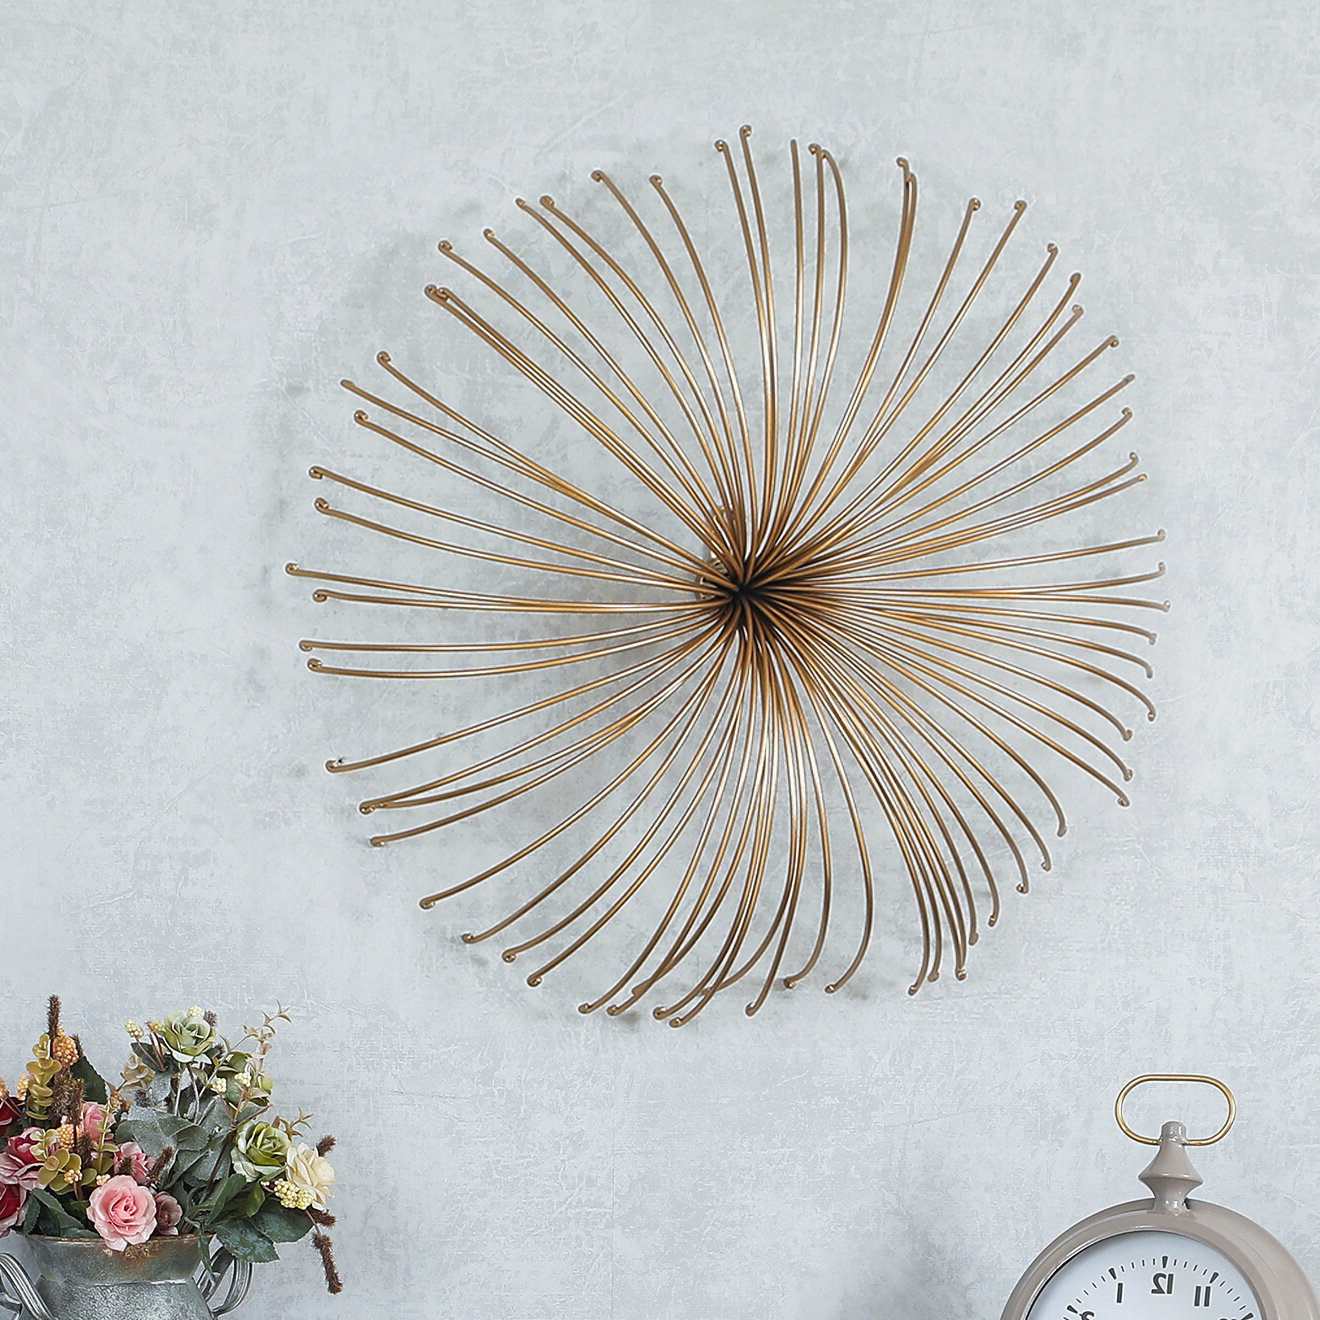 Starburst Wall Décor By Wrought Studio Regarding 2019 Iron Flower Starburst Wall Décor (View 10 of 20)